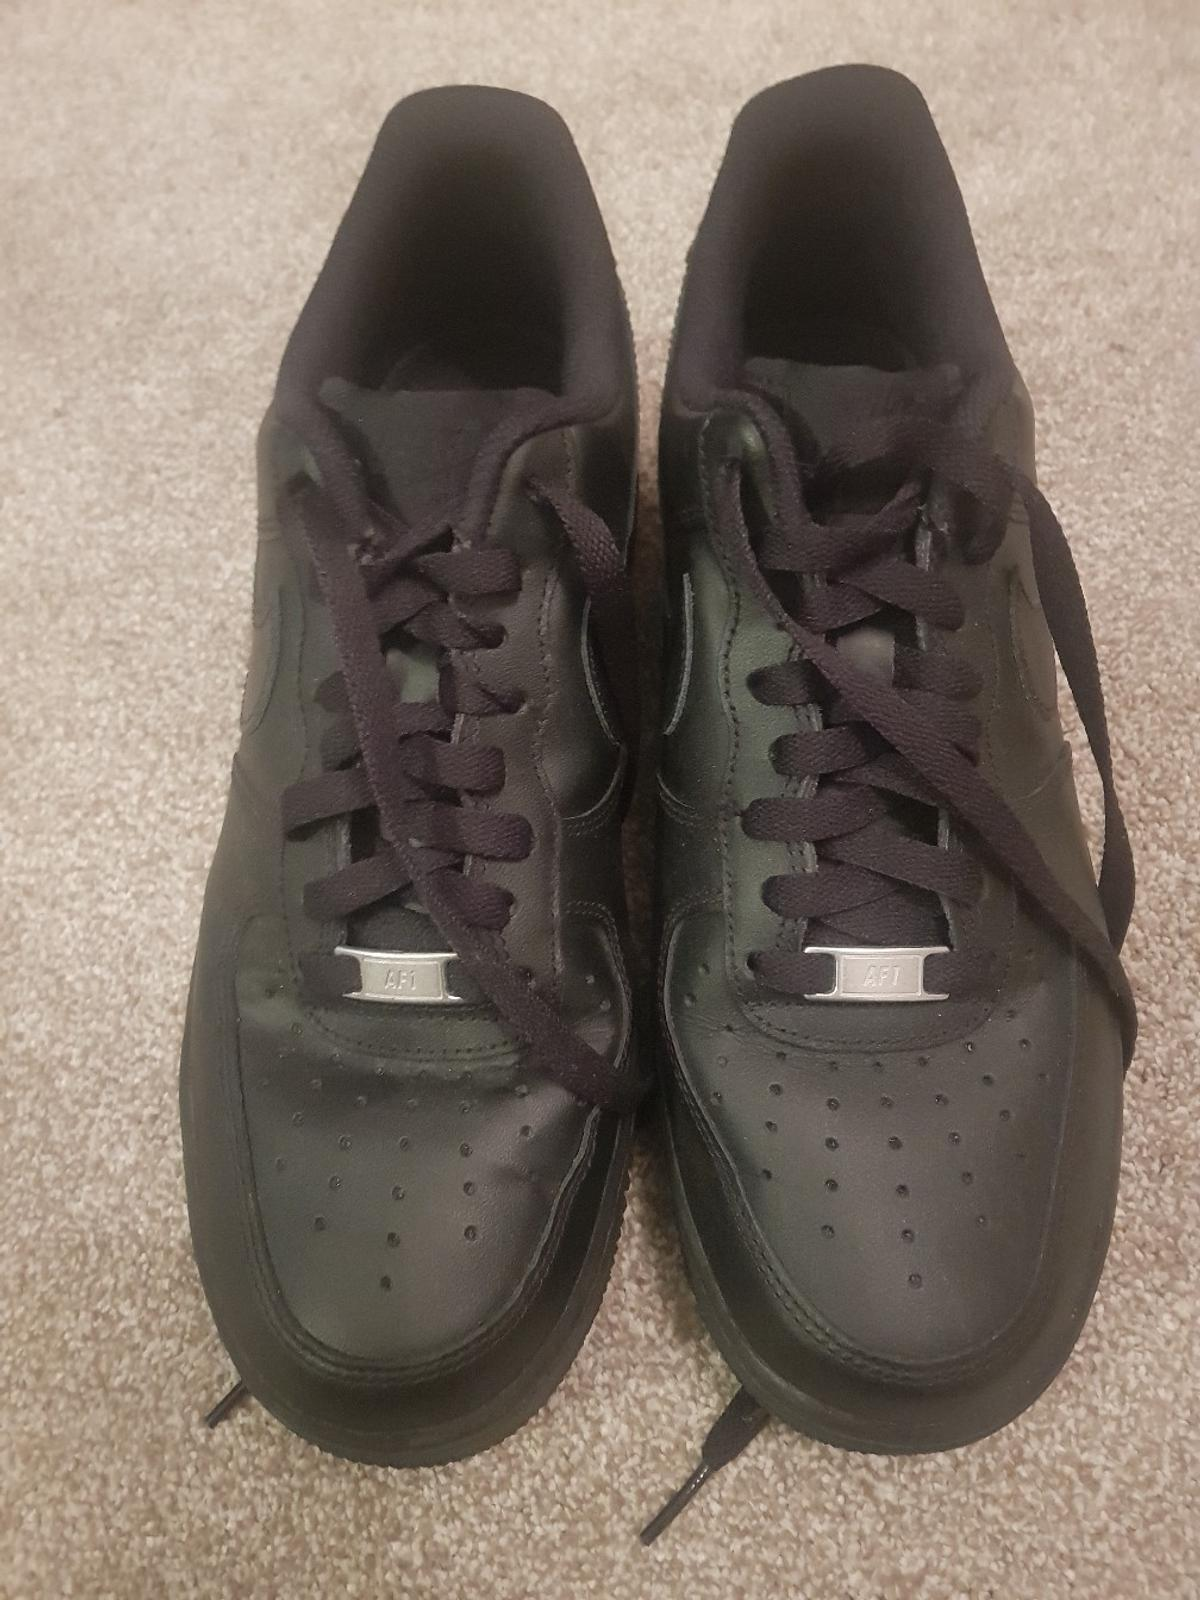 2b74269ed32e5 Description. Black Nike Air - Air Force 1 trainers size 8 adult worn ONCE  ...